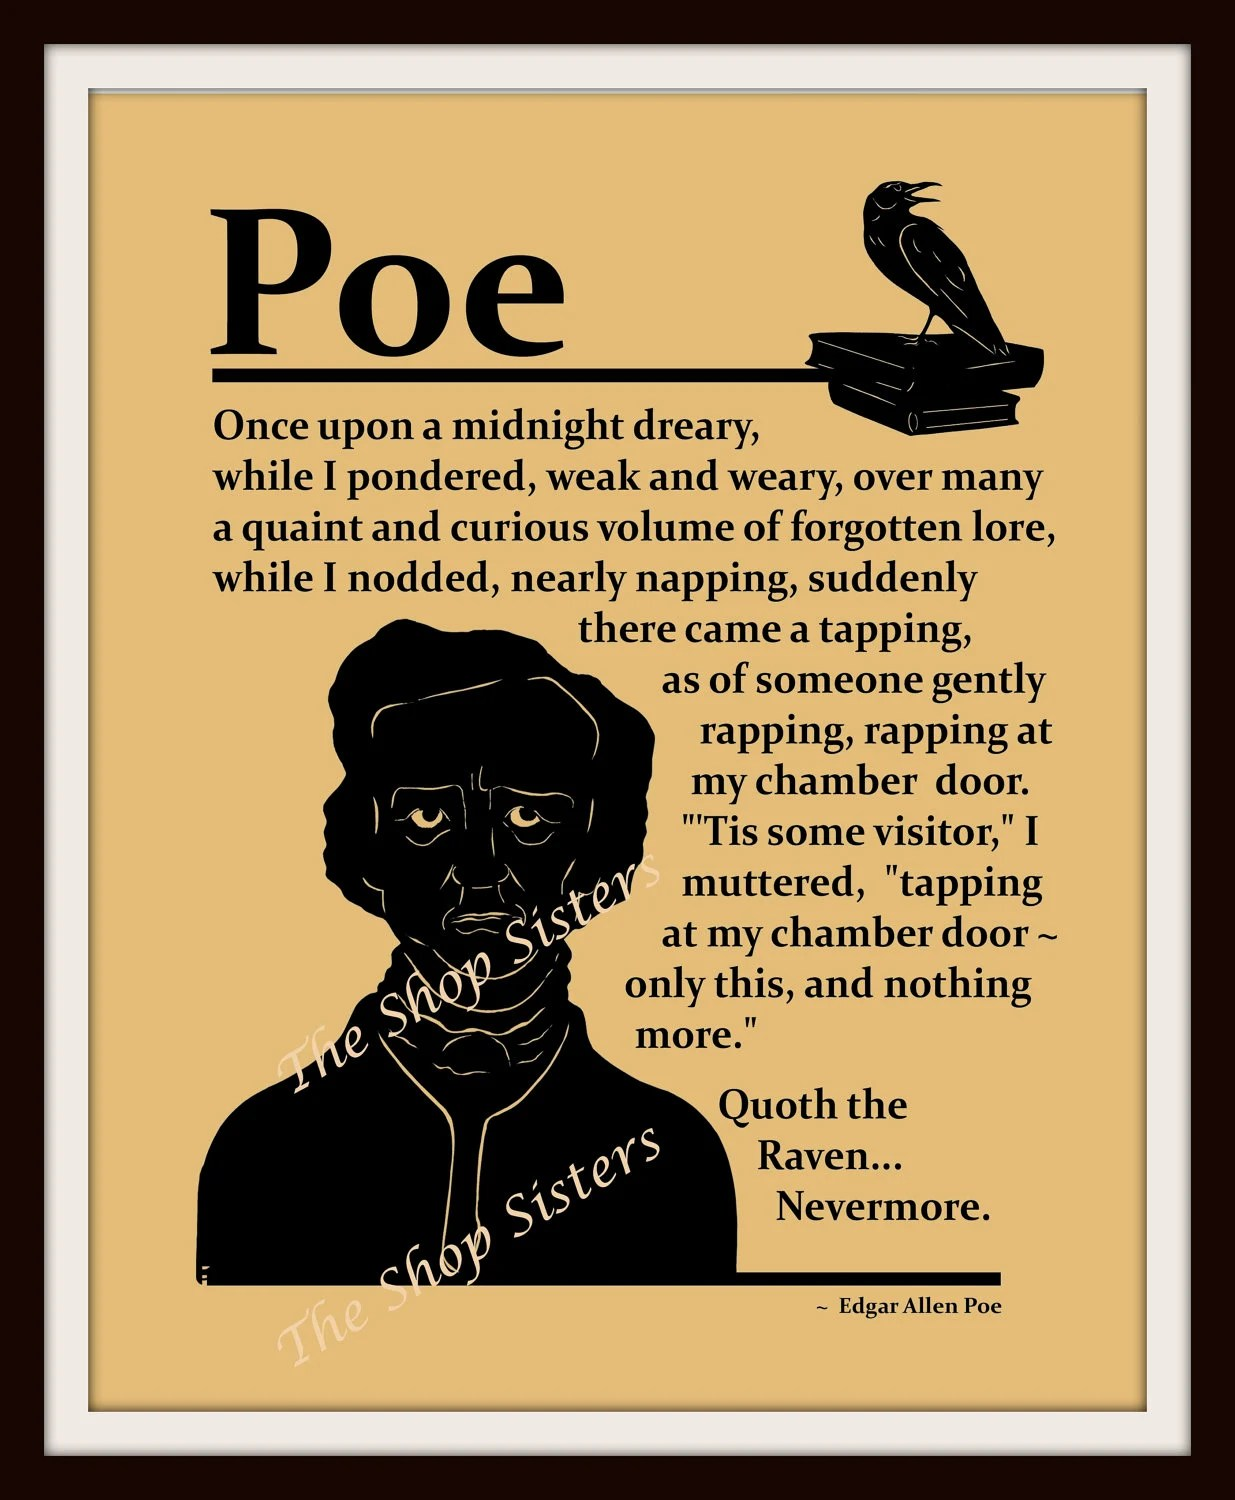 Items similar to Edgar Allan Poe Raven Poem Silhouette